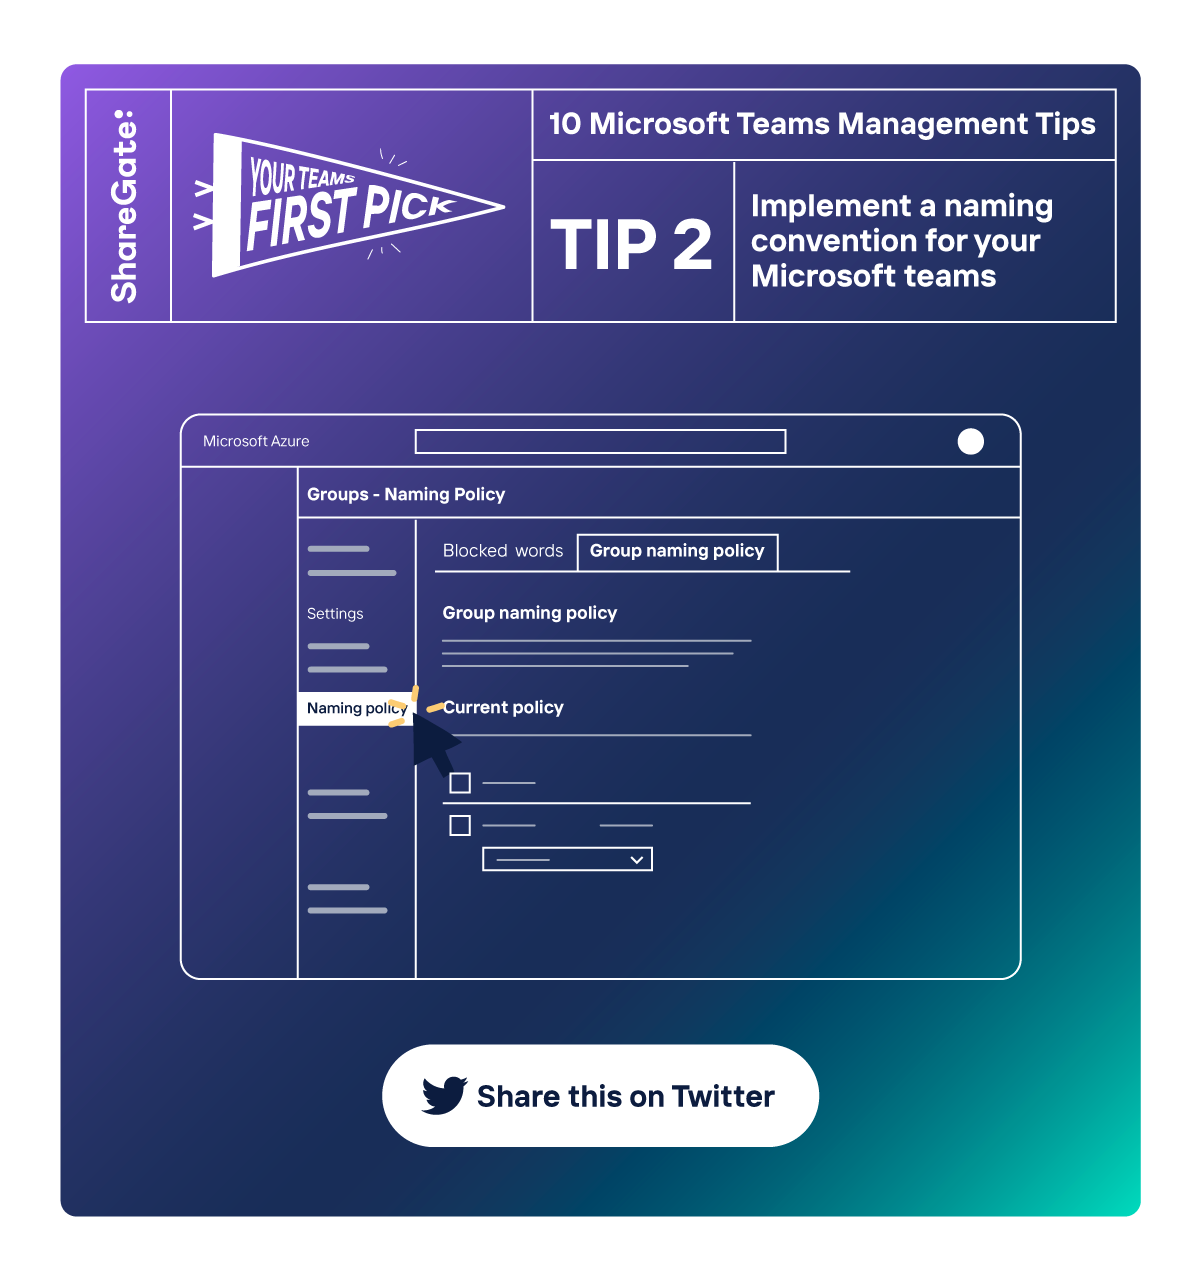 Illustrated infographic showing tip #2: Implement a naming convention for your Microsoft teams.